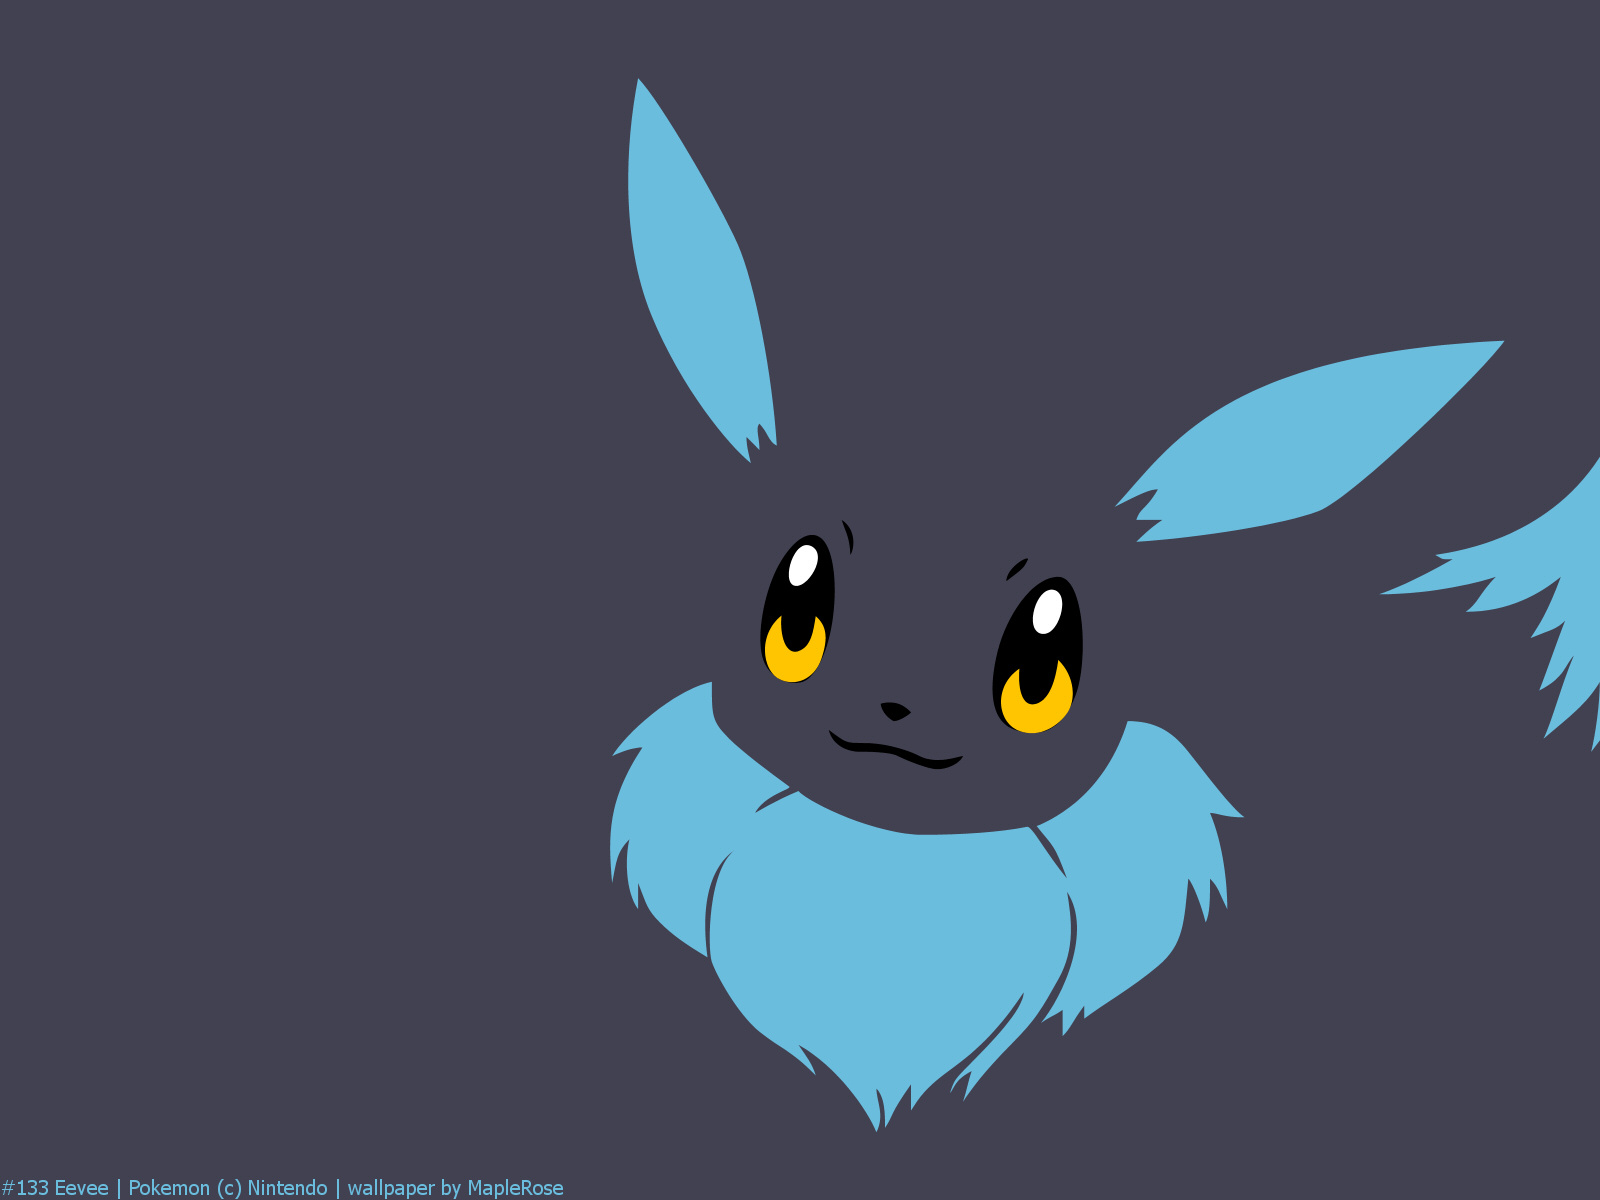 Most Inspiring Wallpaper Home Screen Minimalist - 133eevee-umbreon-s1600x1200  Best Photo Reference_756135.jpg